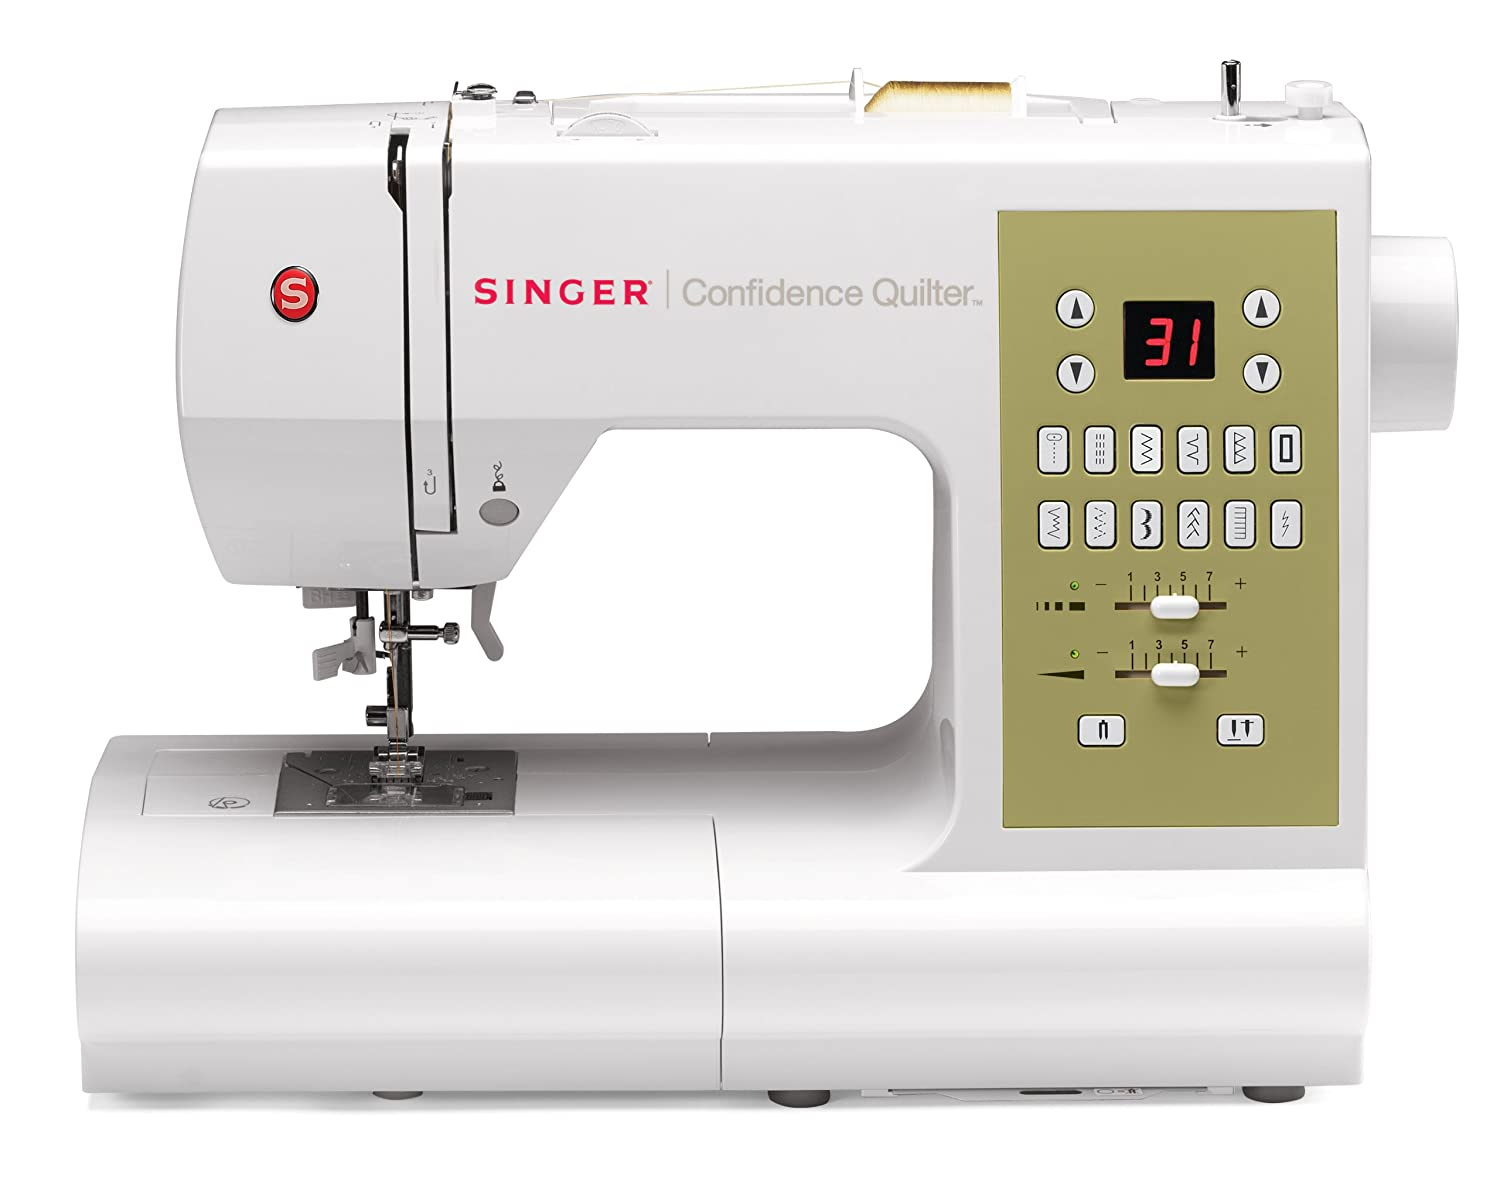 2 STAYBRIGHT LEDs,Best Sewing Machine for Quilting SINGER Confidence Quilter 7469Q Computerized Electronic Portable Sewing Machine with 98 Builtin Stitches Programmable Needle UpDown Easy Threading